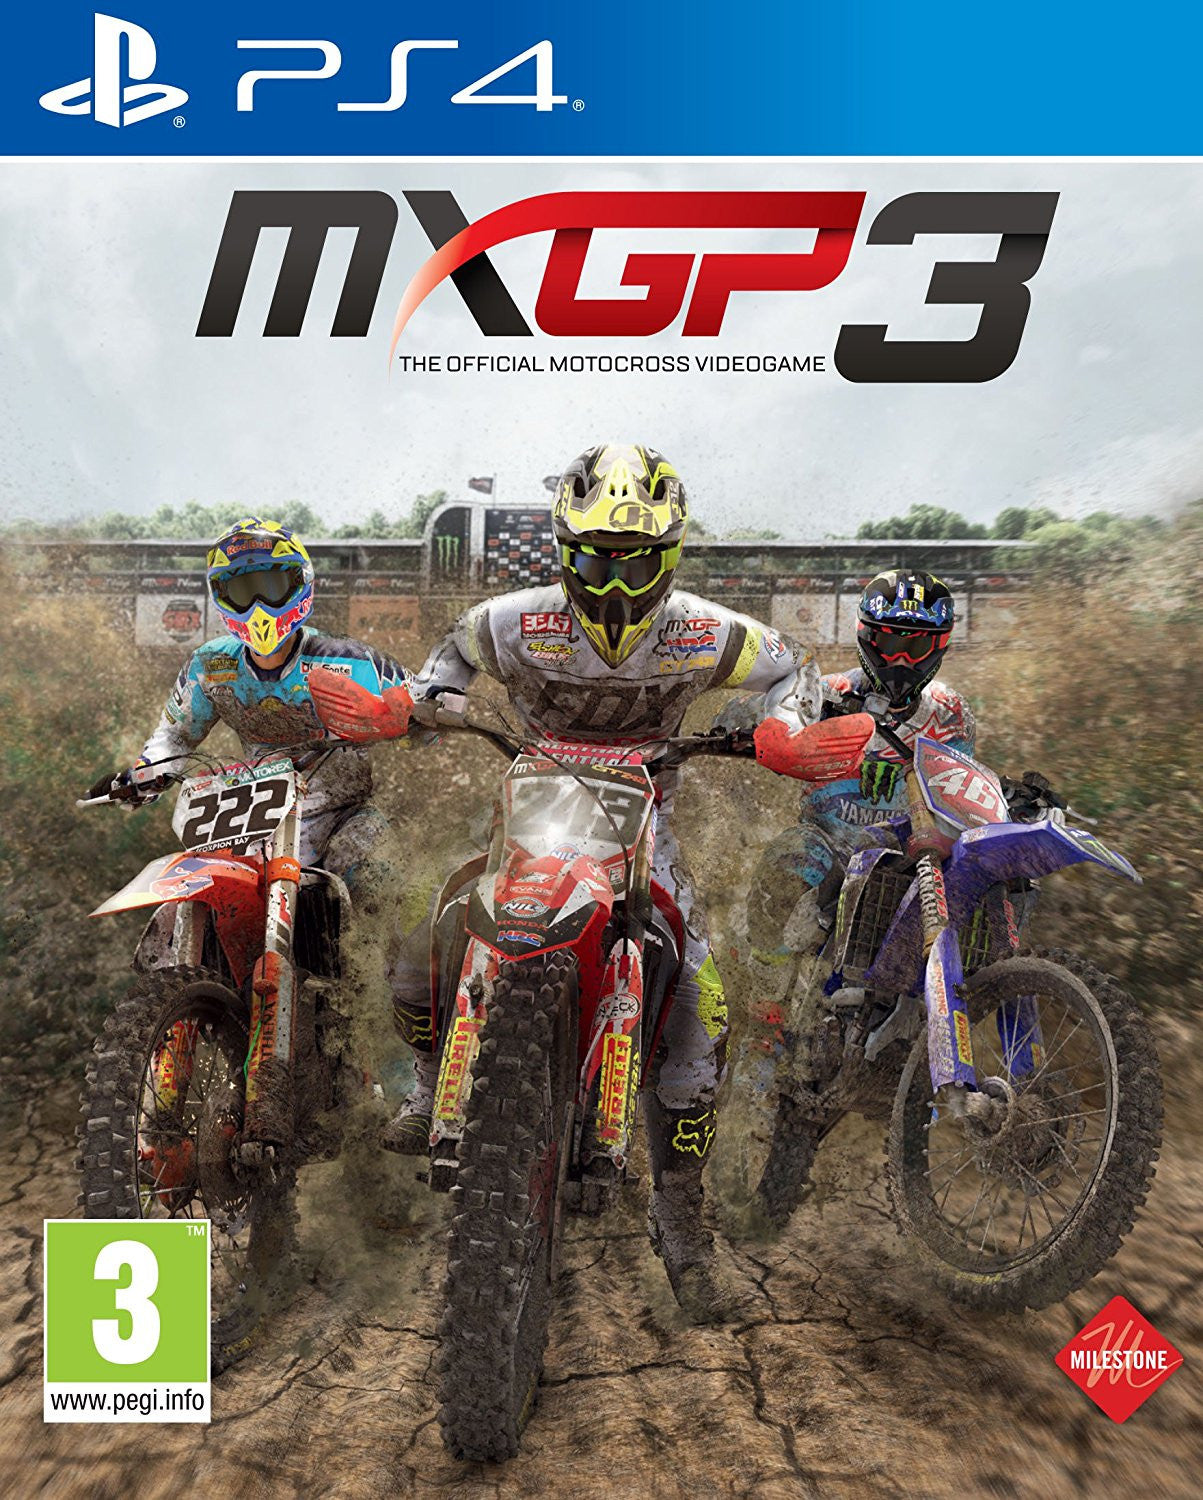 MXGP3 - The Official Motocross Videogame (PS4) - Video Games by Milestone The Chelsea Gamer